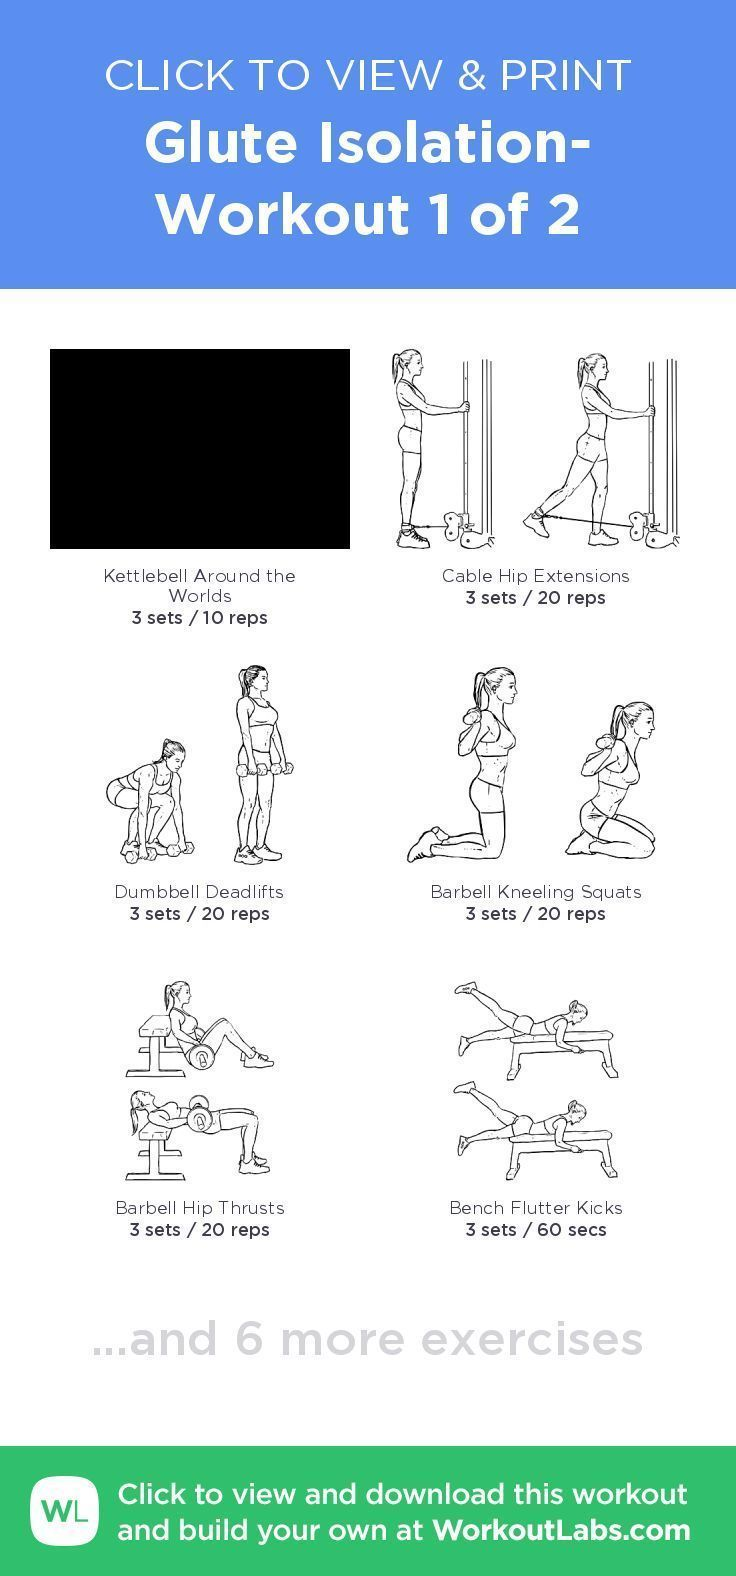 Glute Isolation- Workout 1 of 2 – click to view and print this illustrated ex…